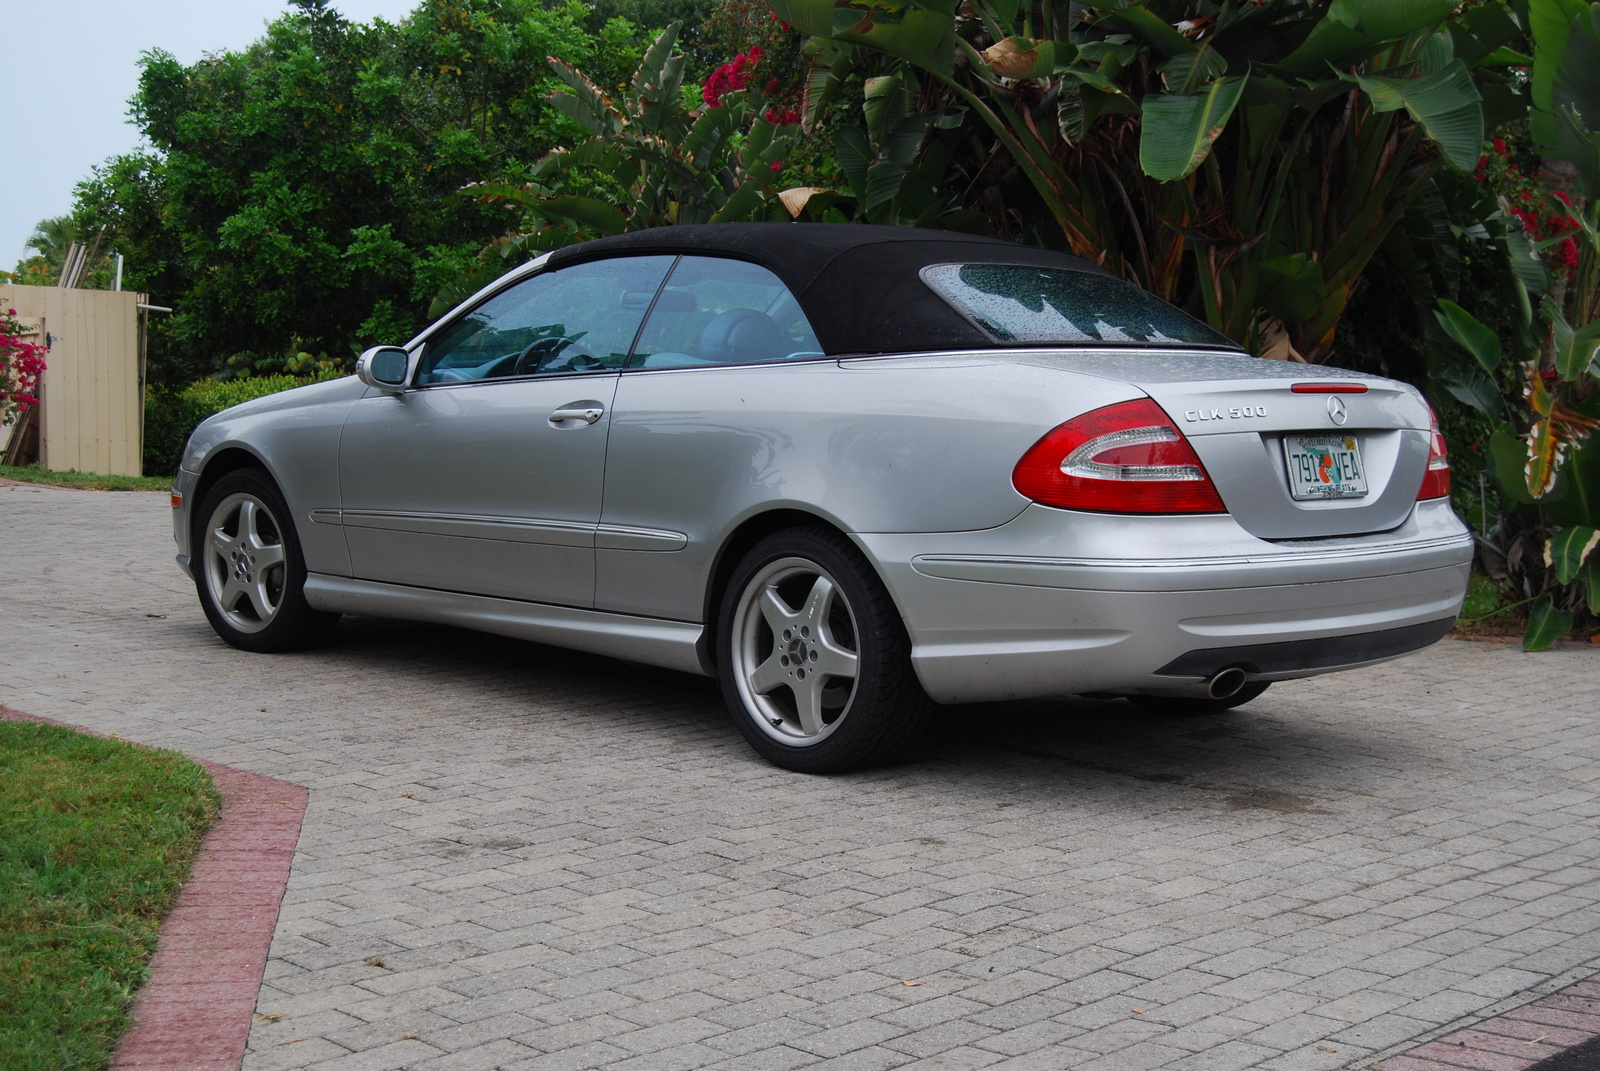 Mercedes benz clk 500 convertible price for Mercedes benz clk 500